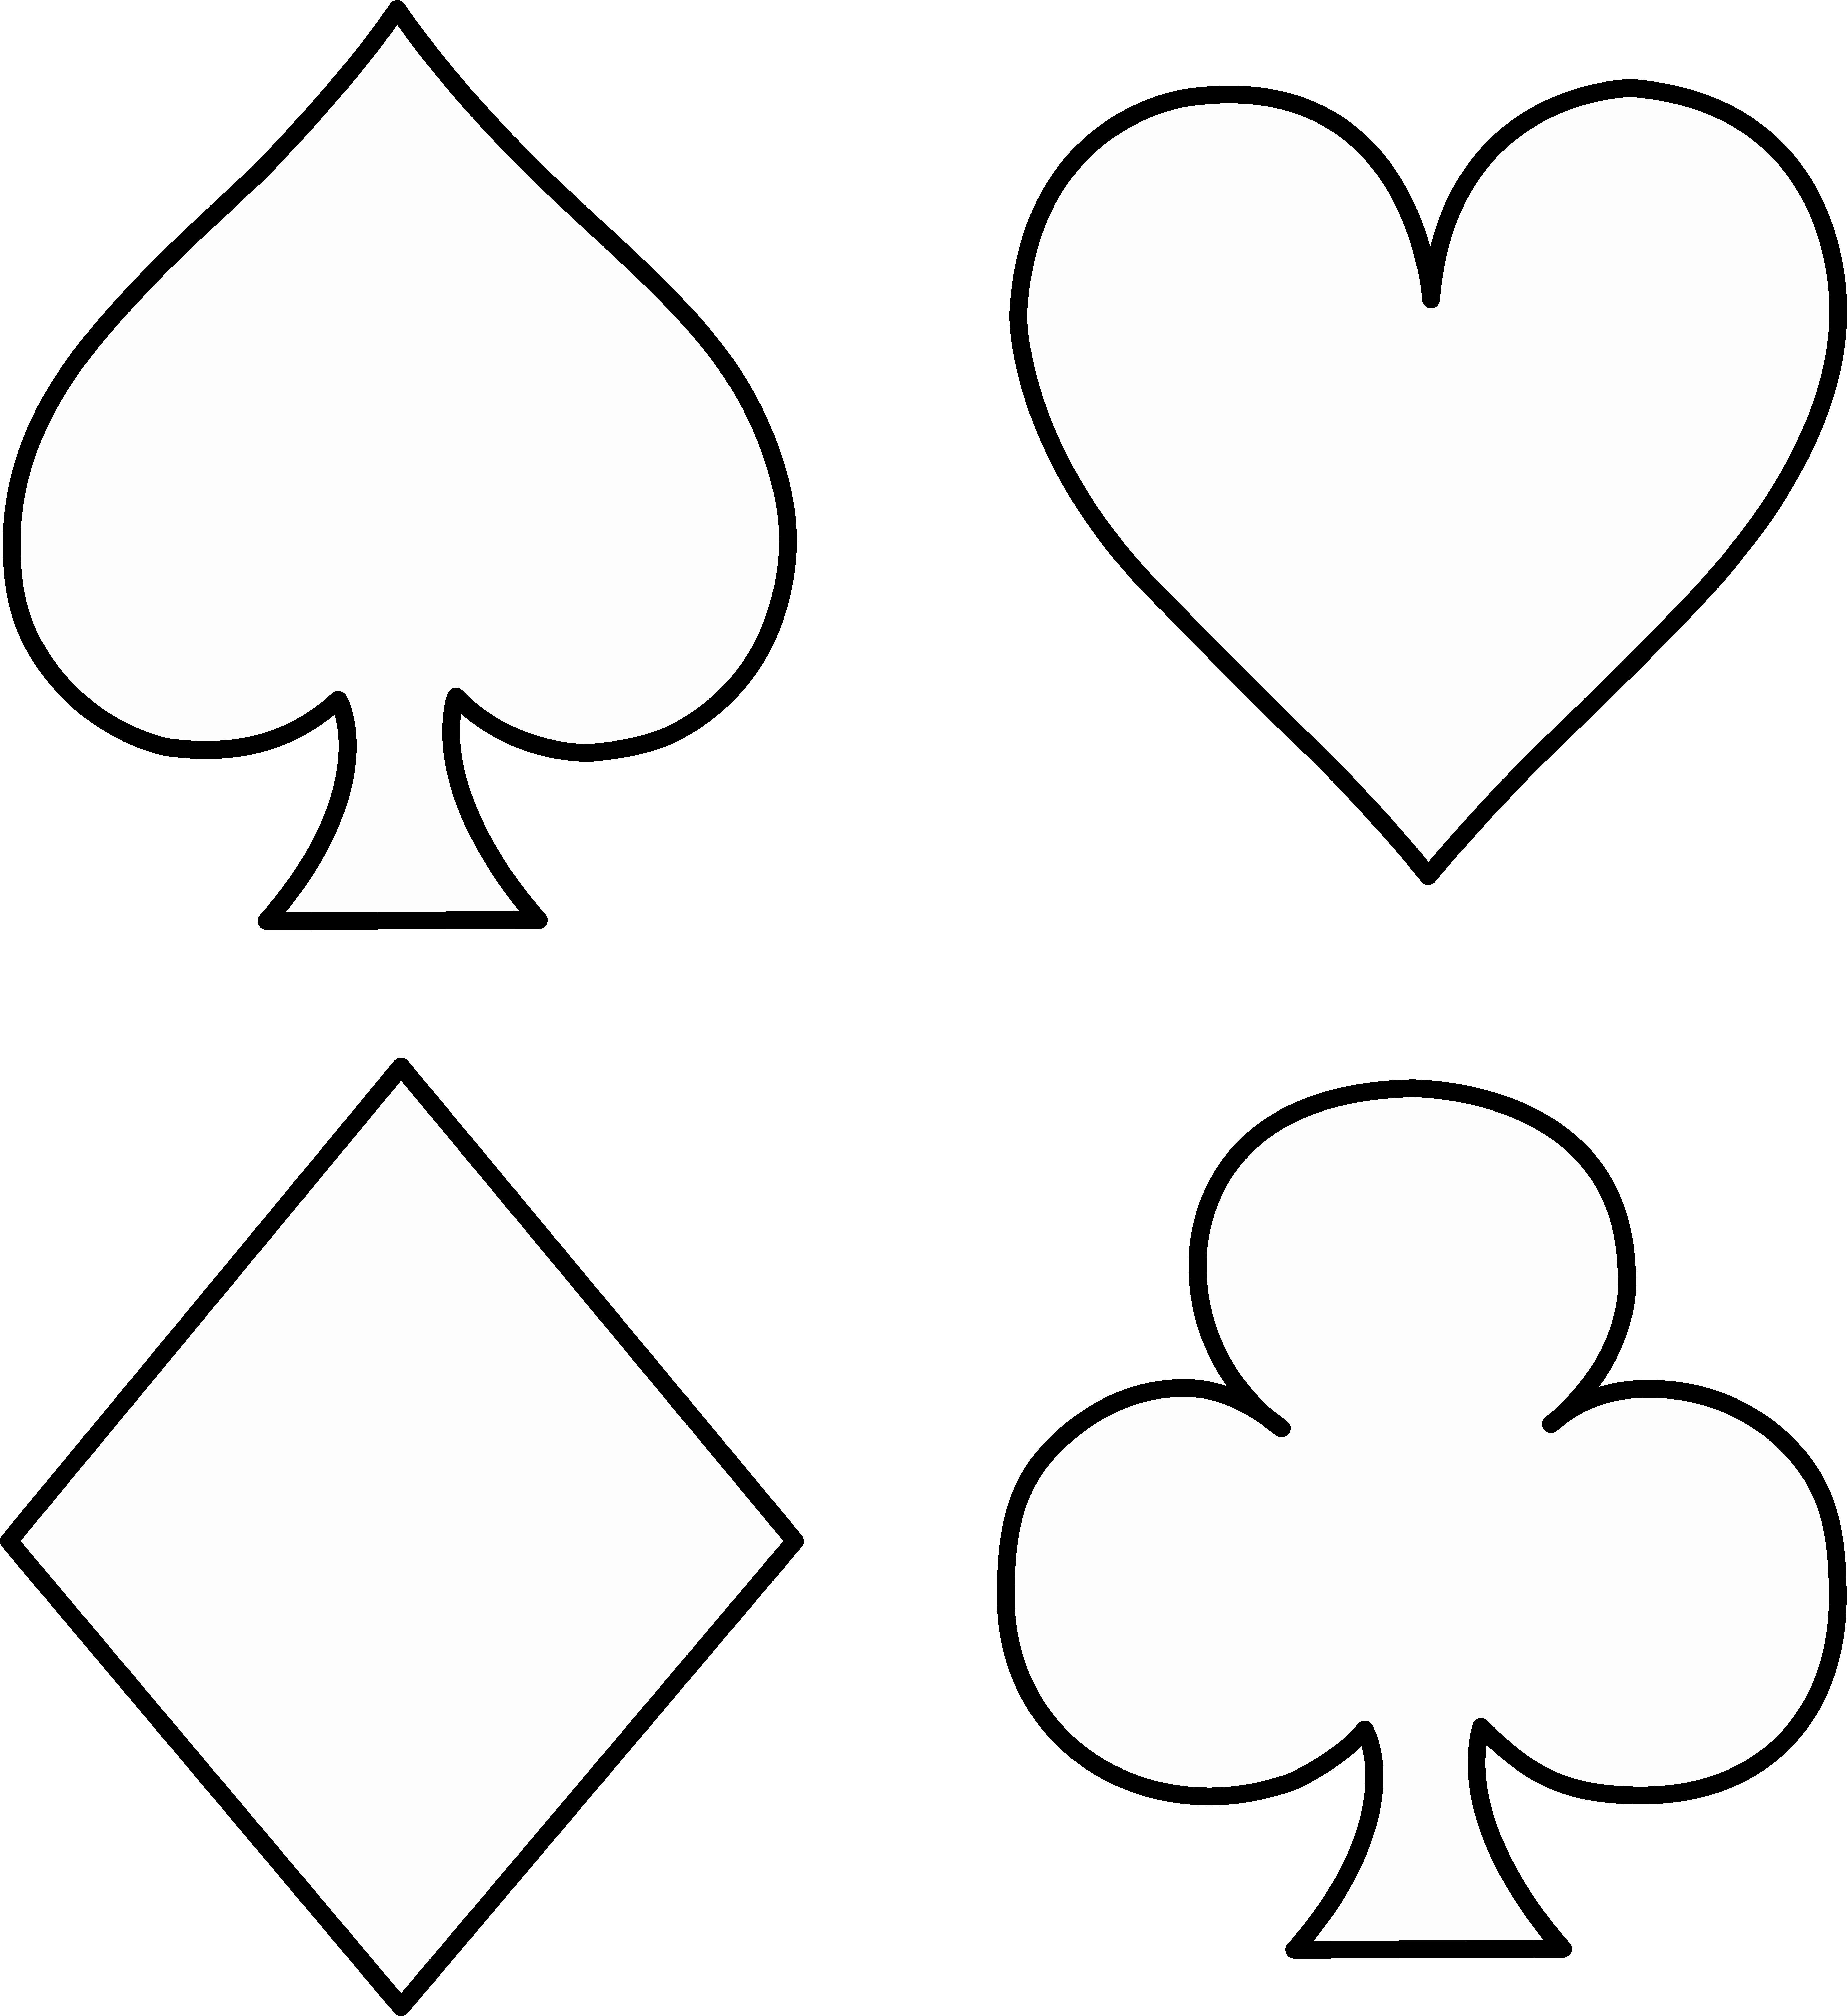 Playing Cards Coloring Pages Inspirational Free Deck Card Symbols Dow Alice In Wonderland Tea Party Birthday Mad Hatter Tea Party Alice In Wonderland Tea Party